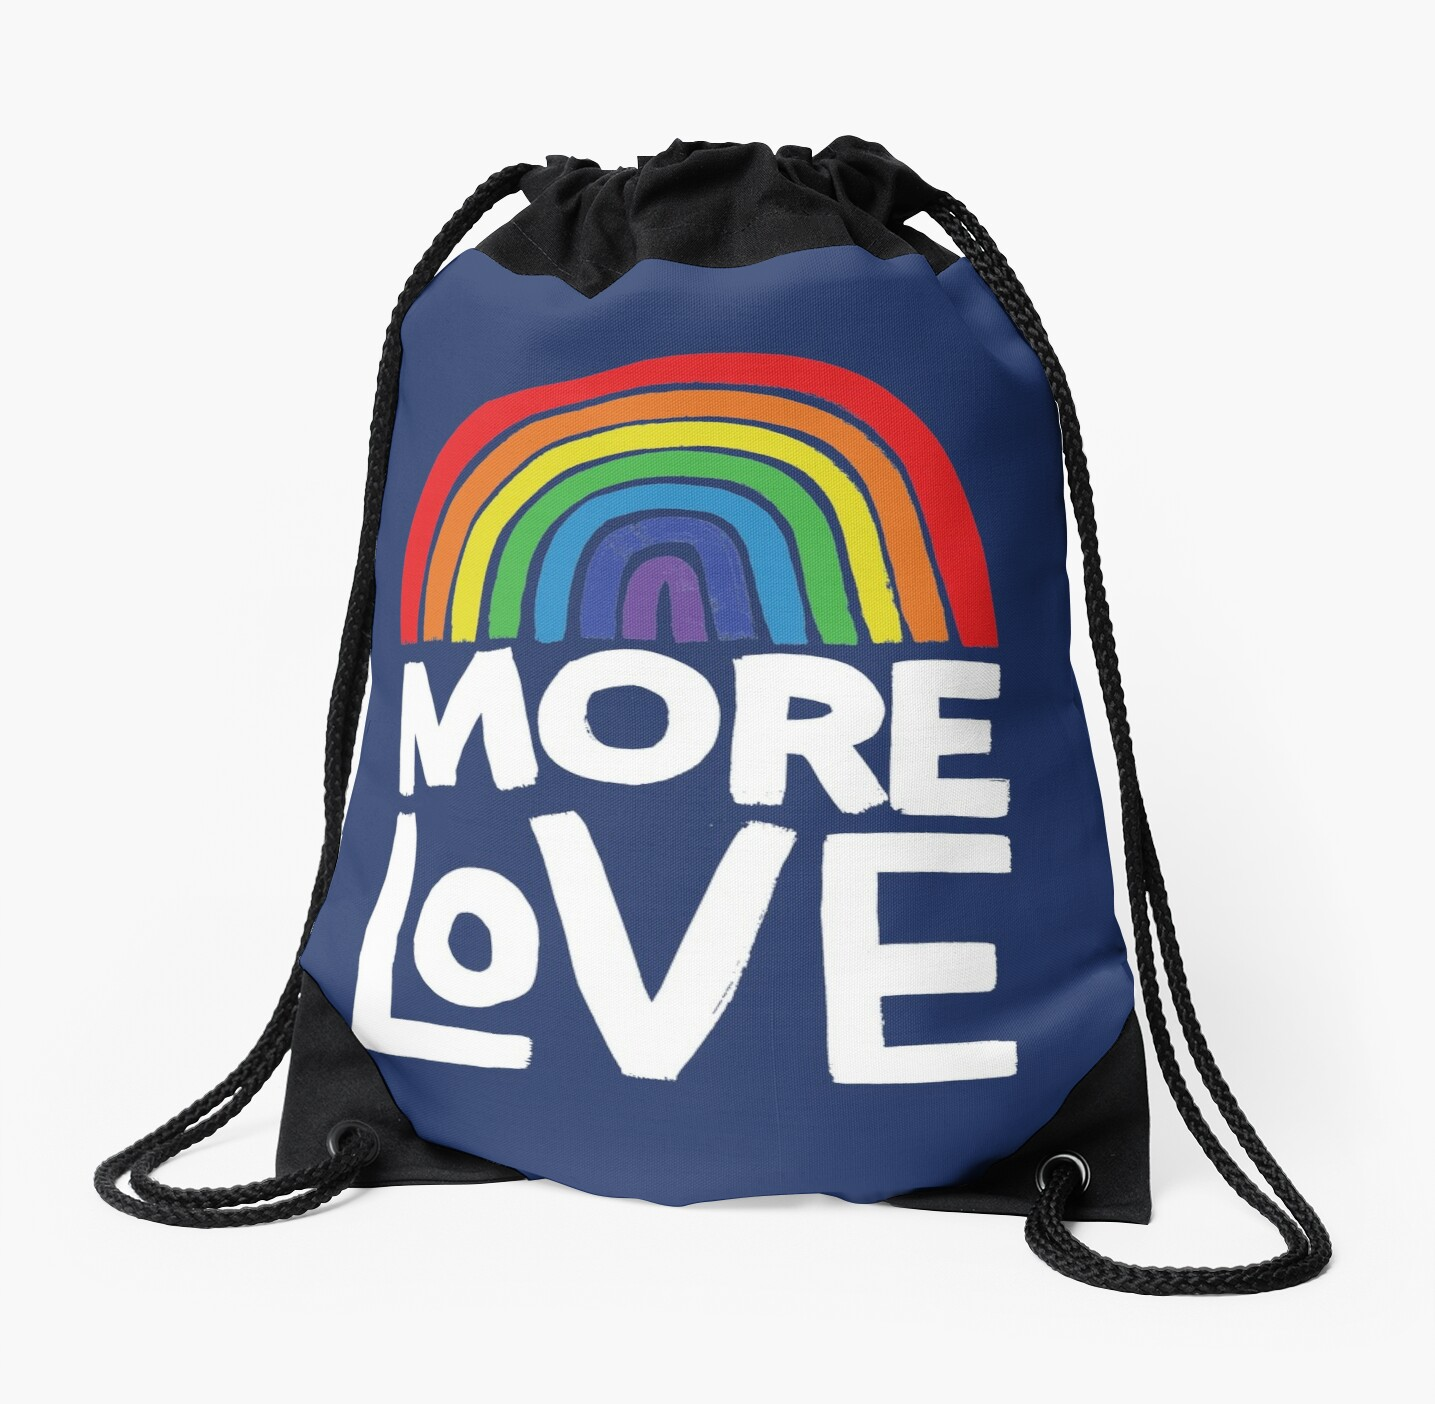 more love by Matthew Taylor Wilson